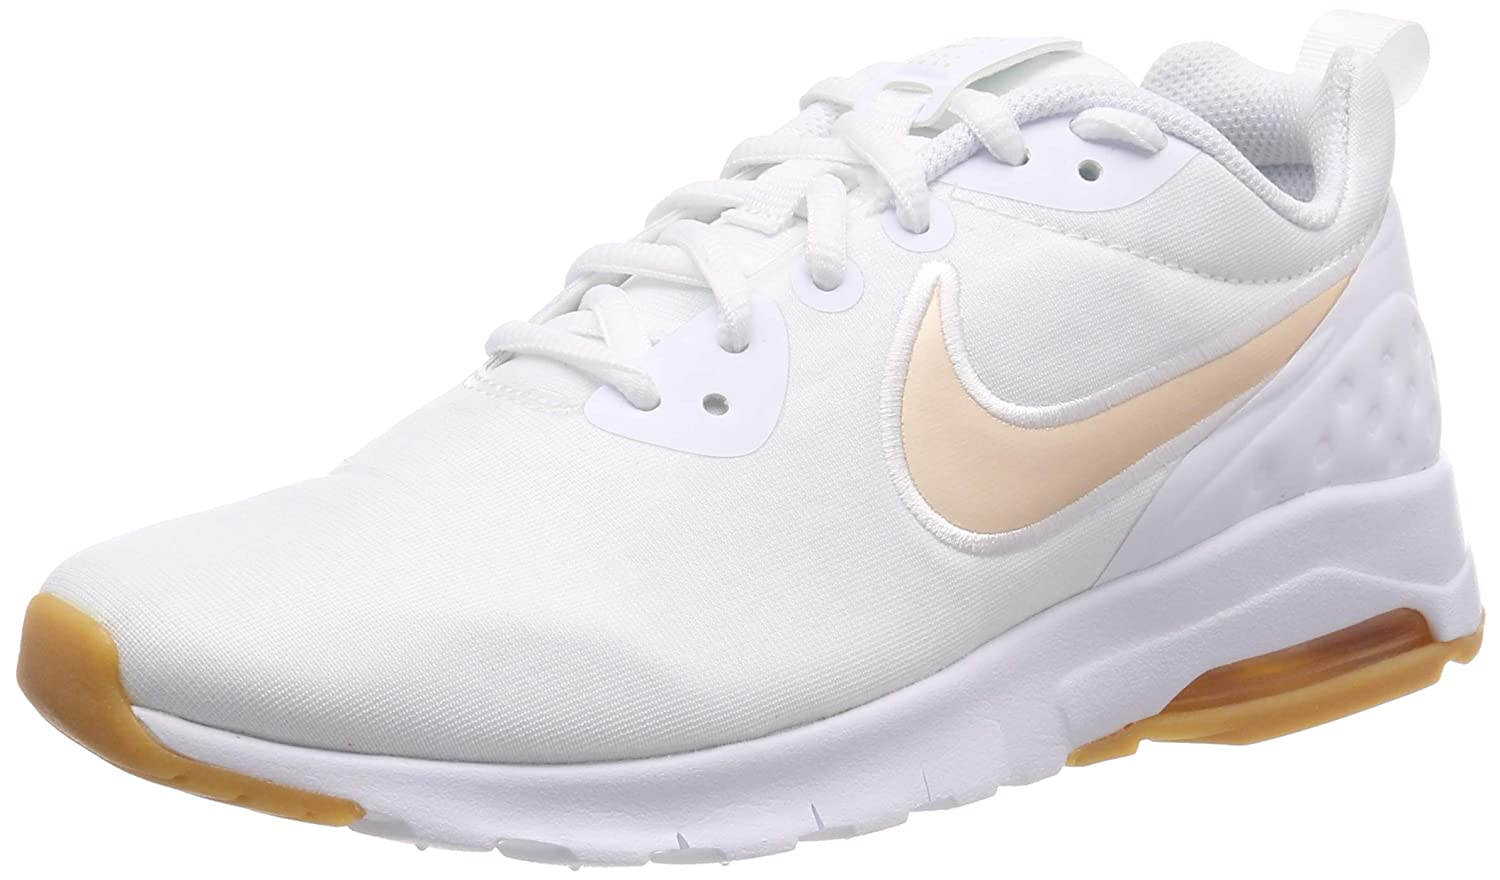 Nike Women's Casual Shoes Air Max Motion LW SE Size US 7.5 M White Guava Ice Gum Light Brown 844895 102